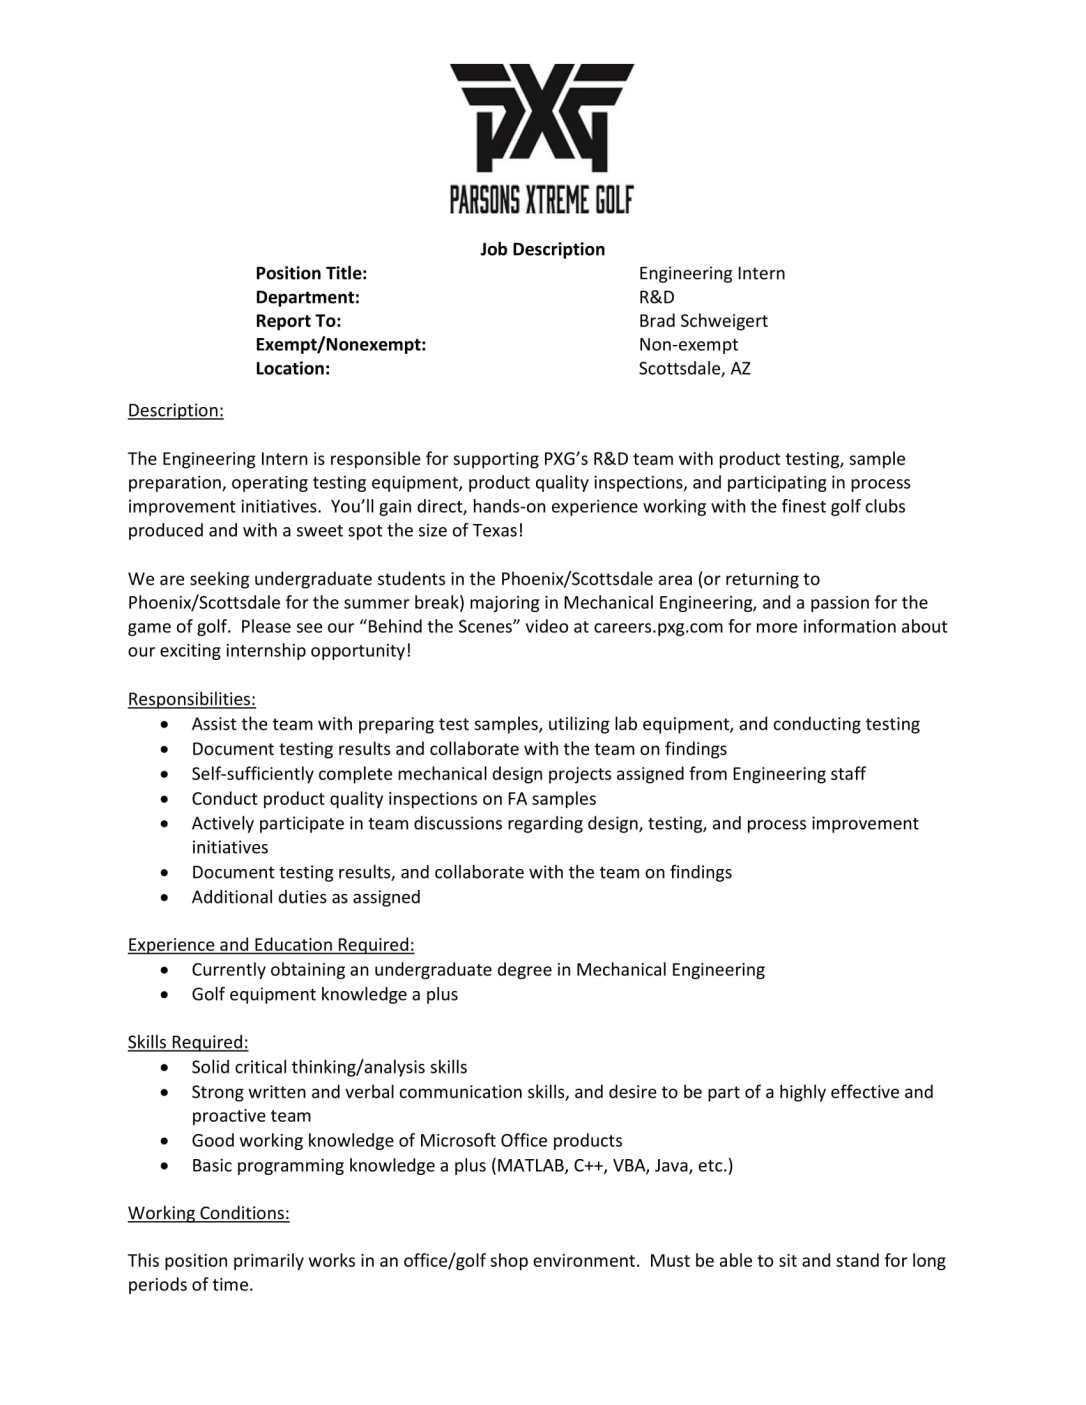 Engineering Intern - PXG-1